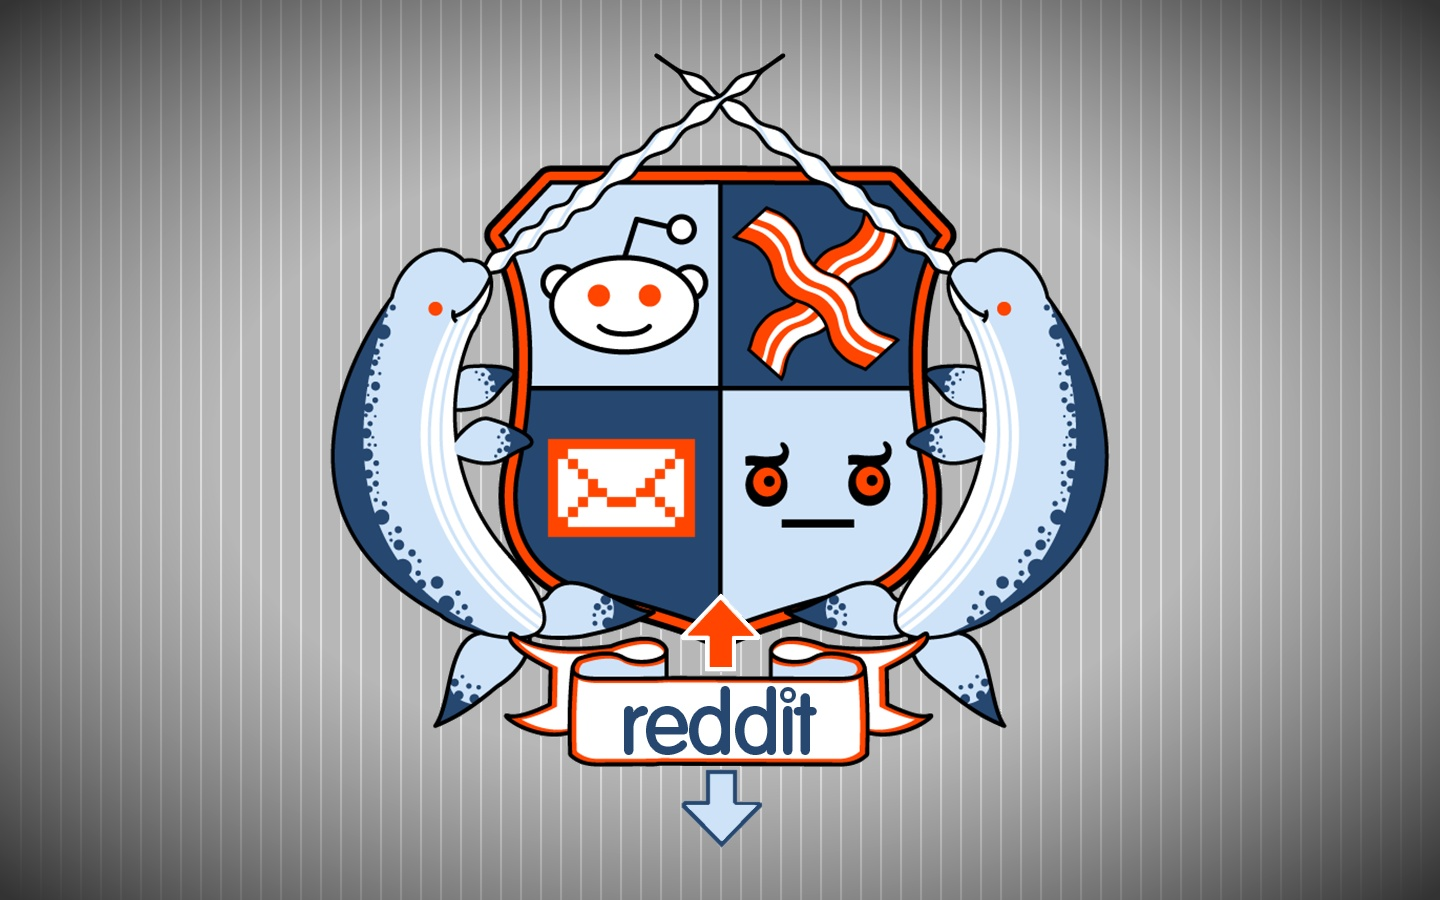 Reddit Coat of Arms